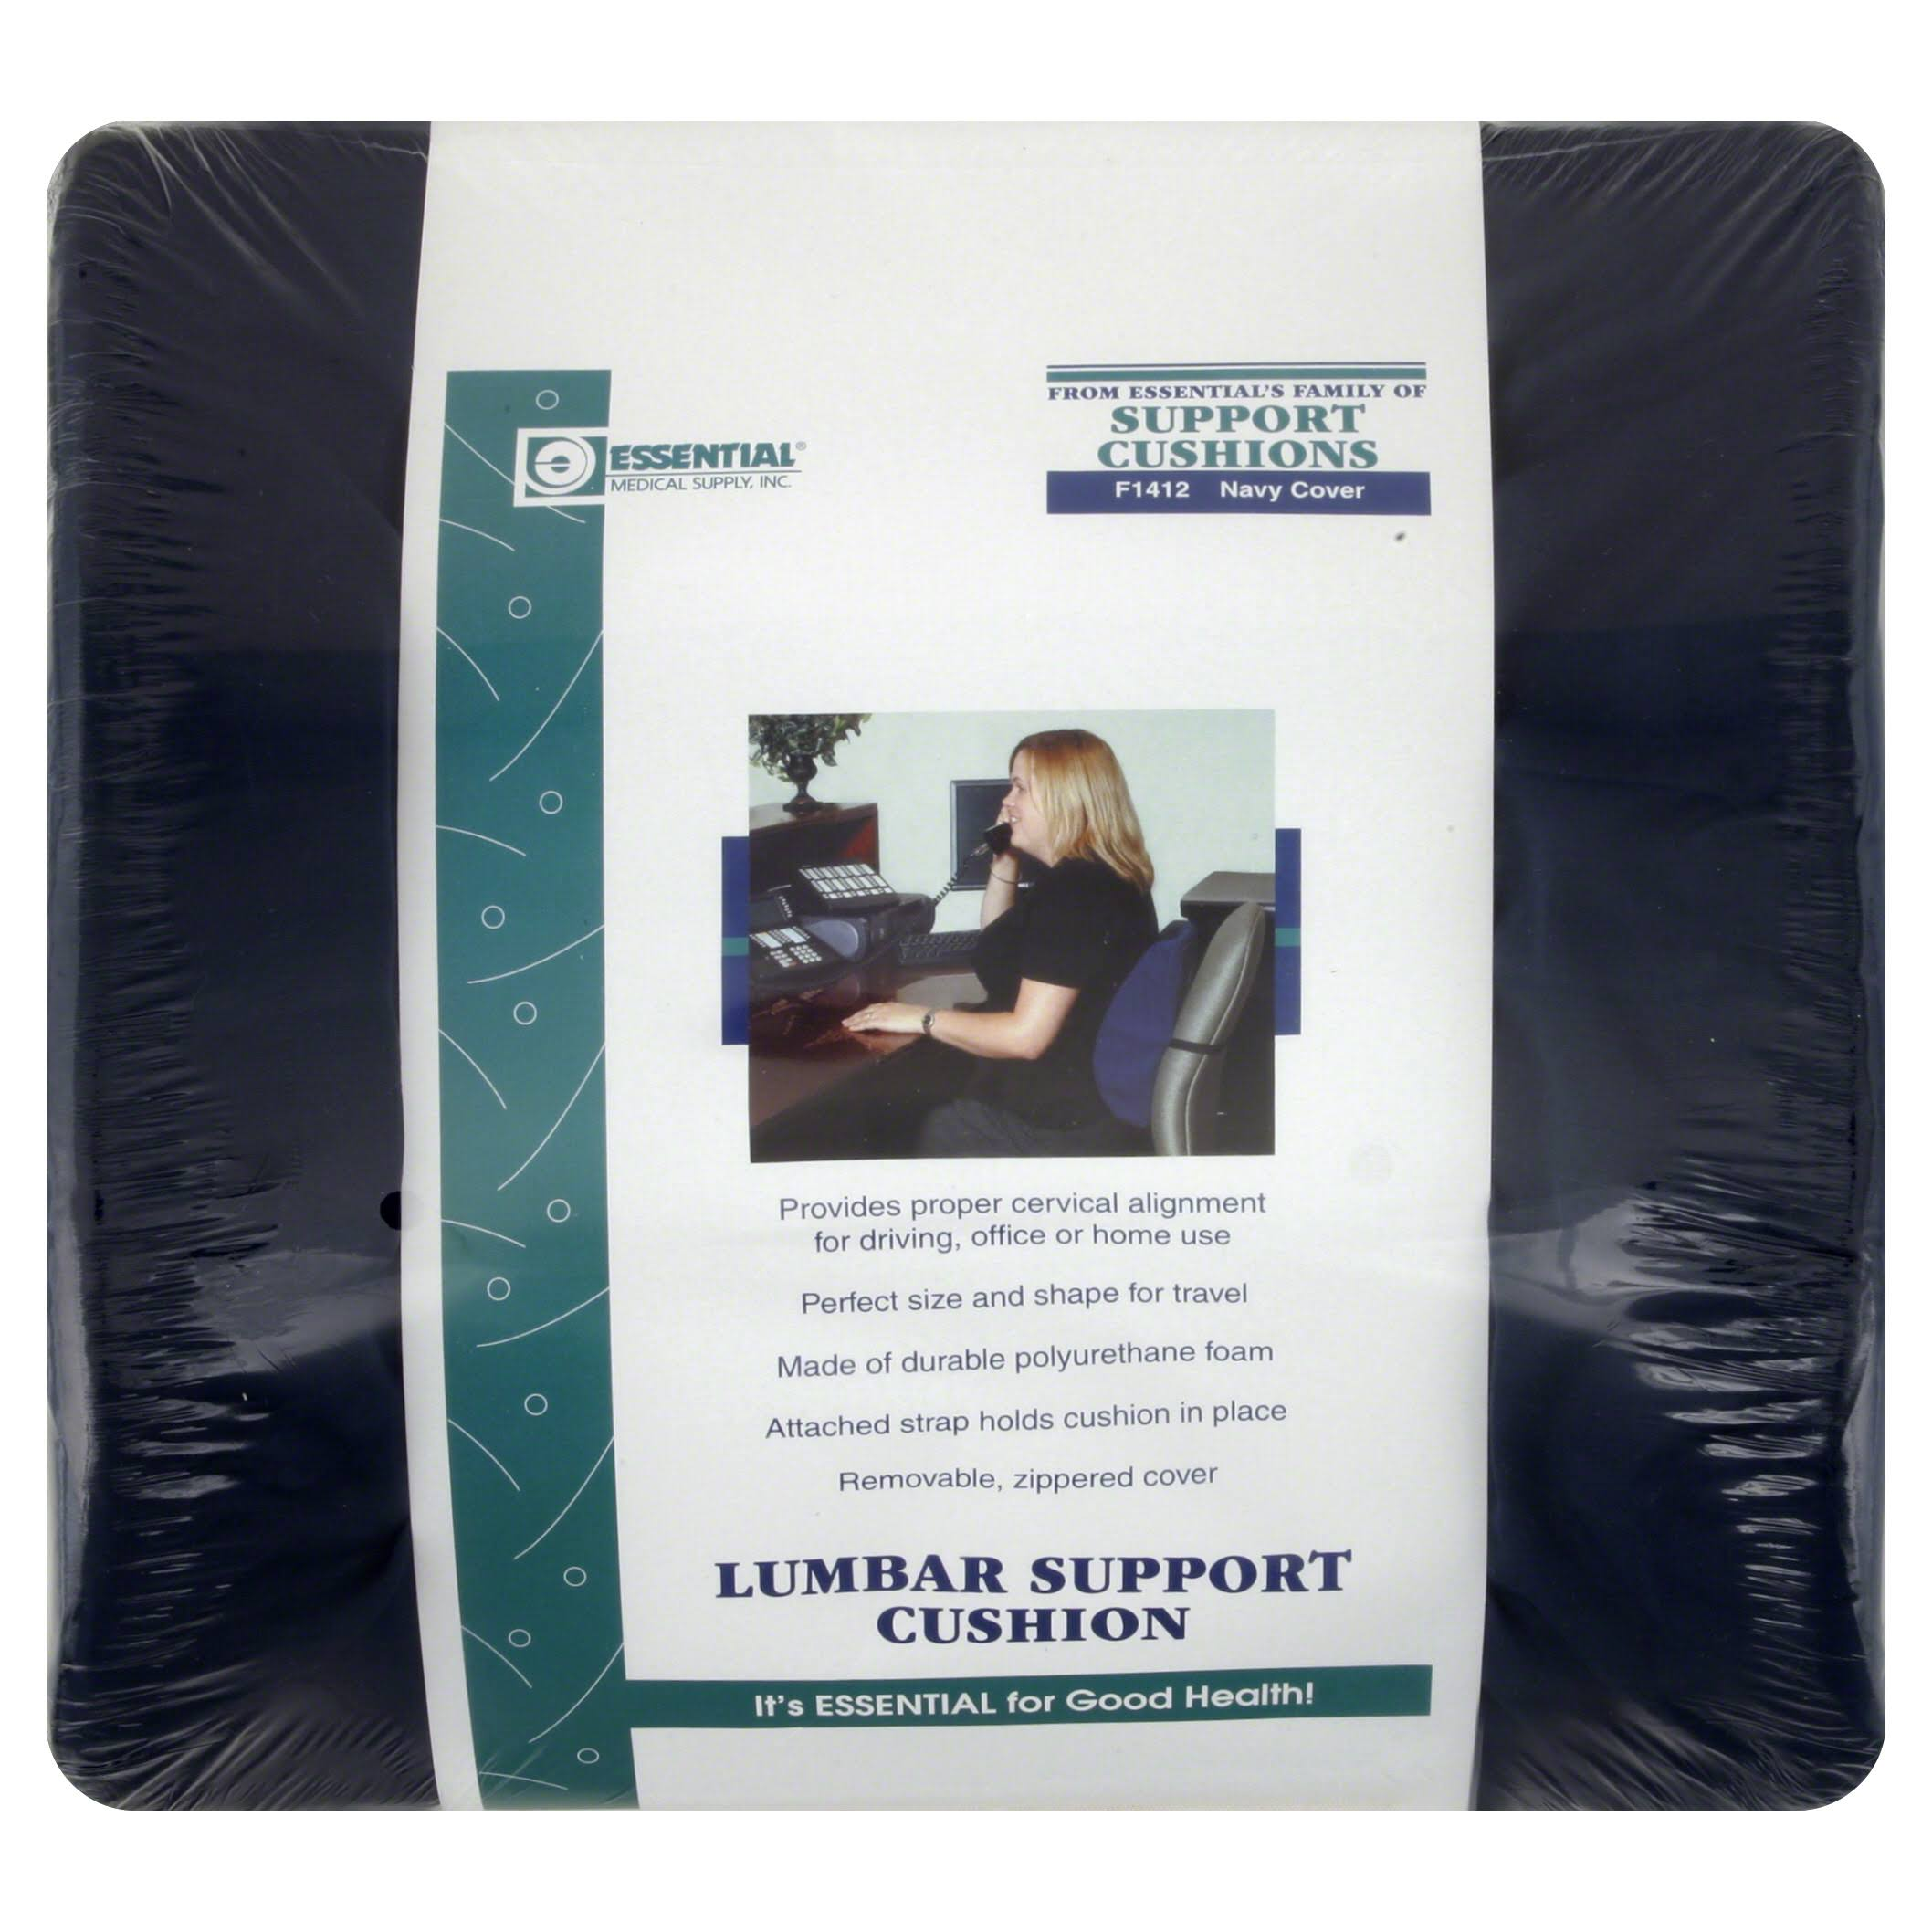 Essential Medical F1412 Lumbar Cushion - with Strap, Navy